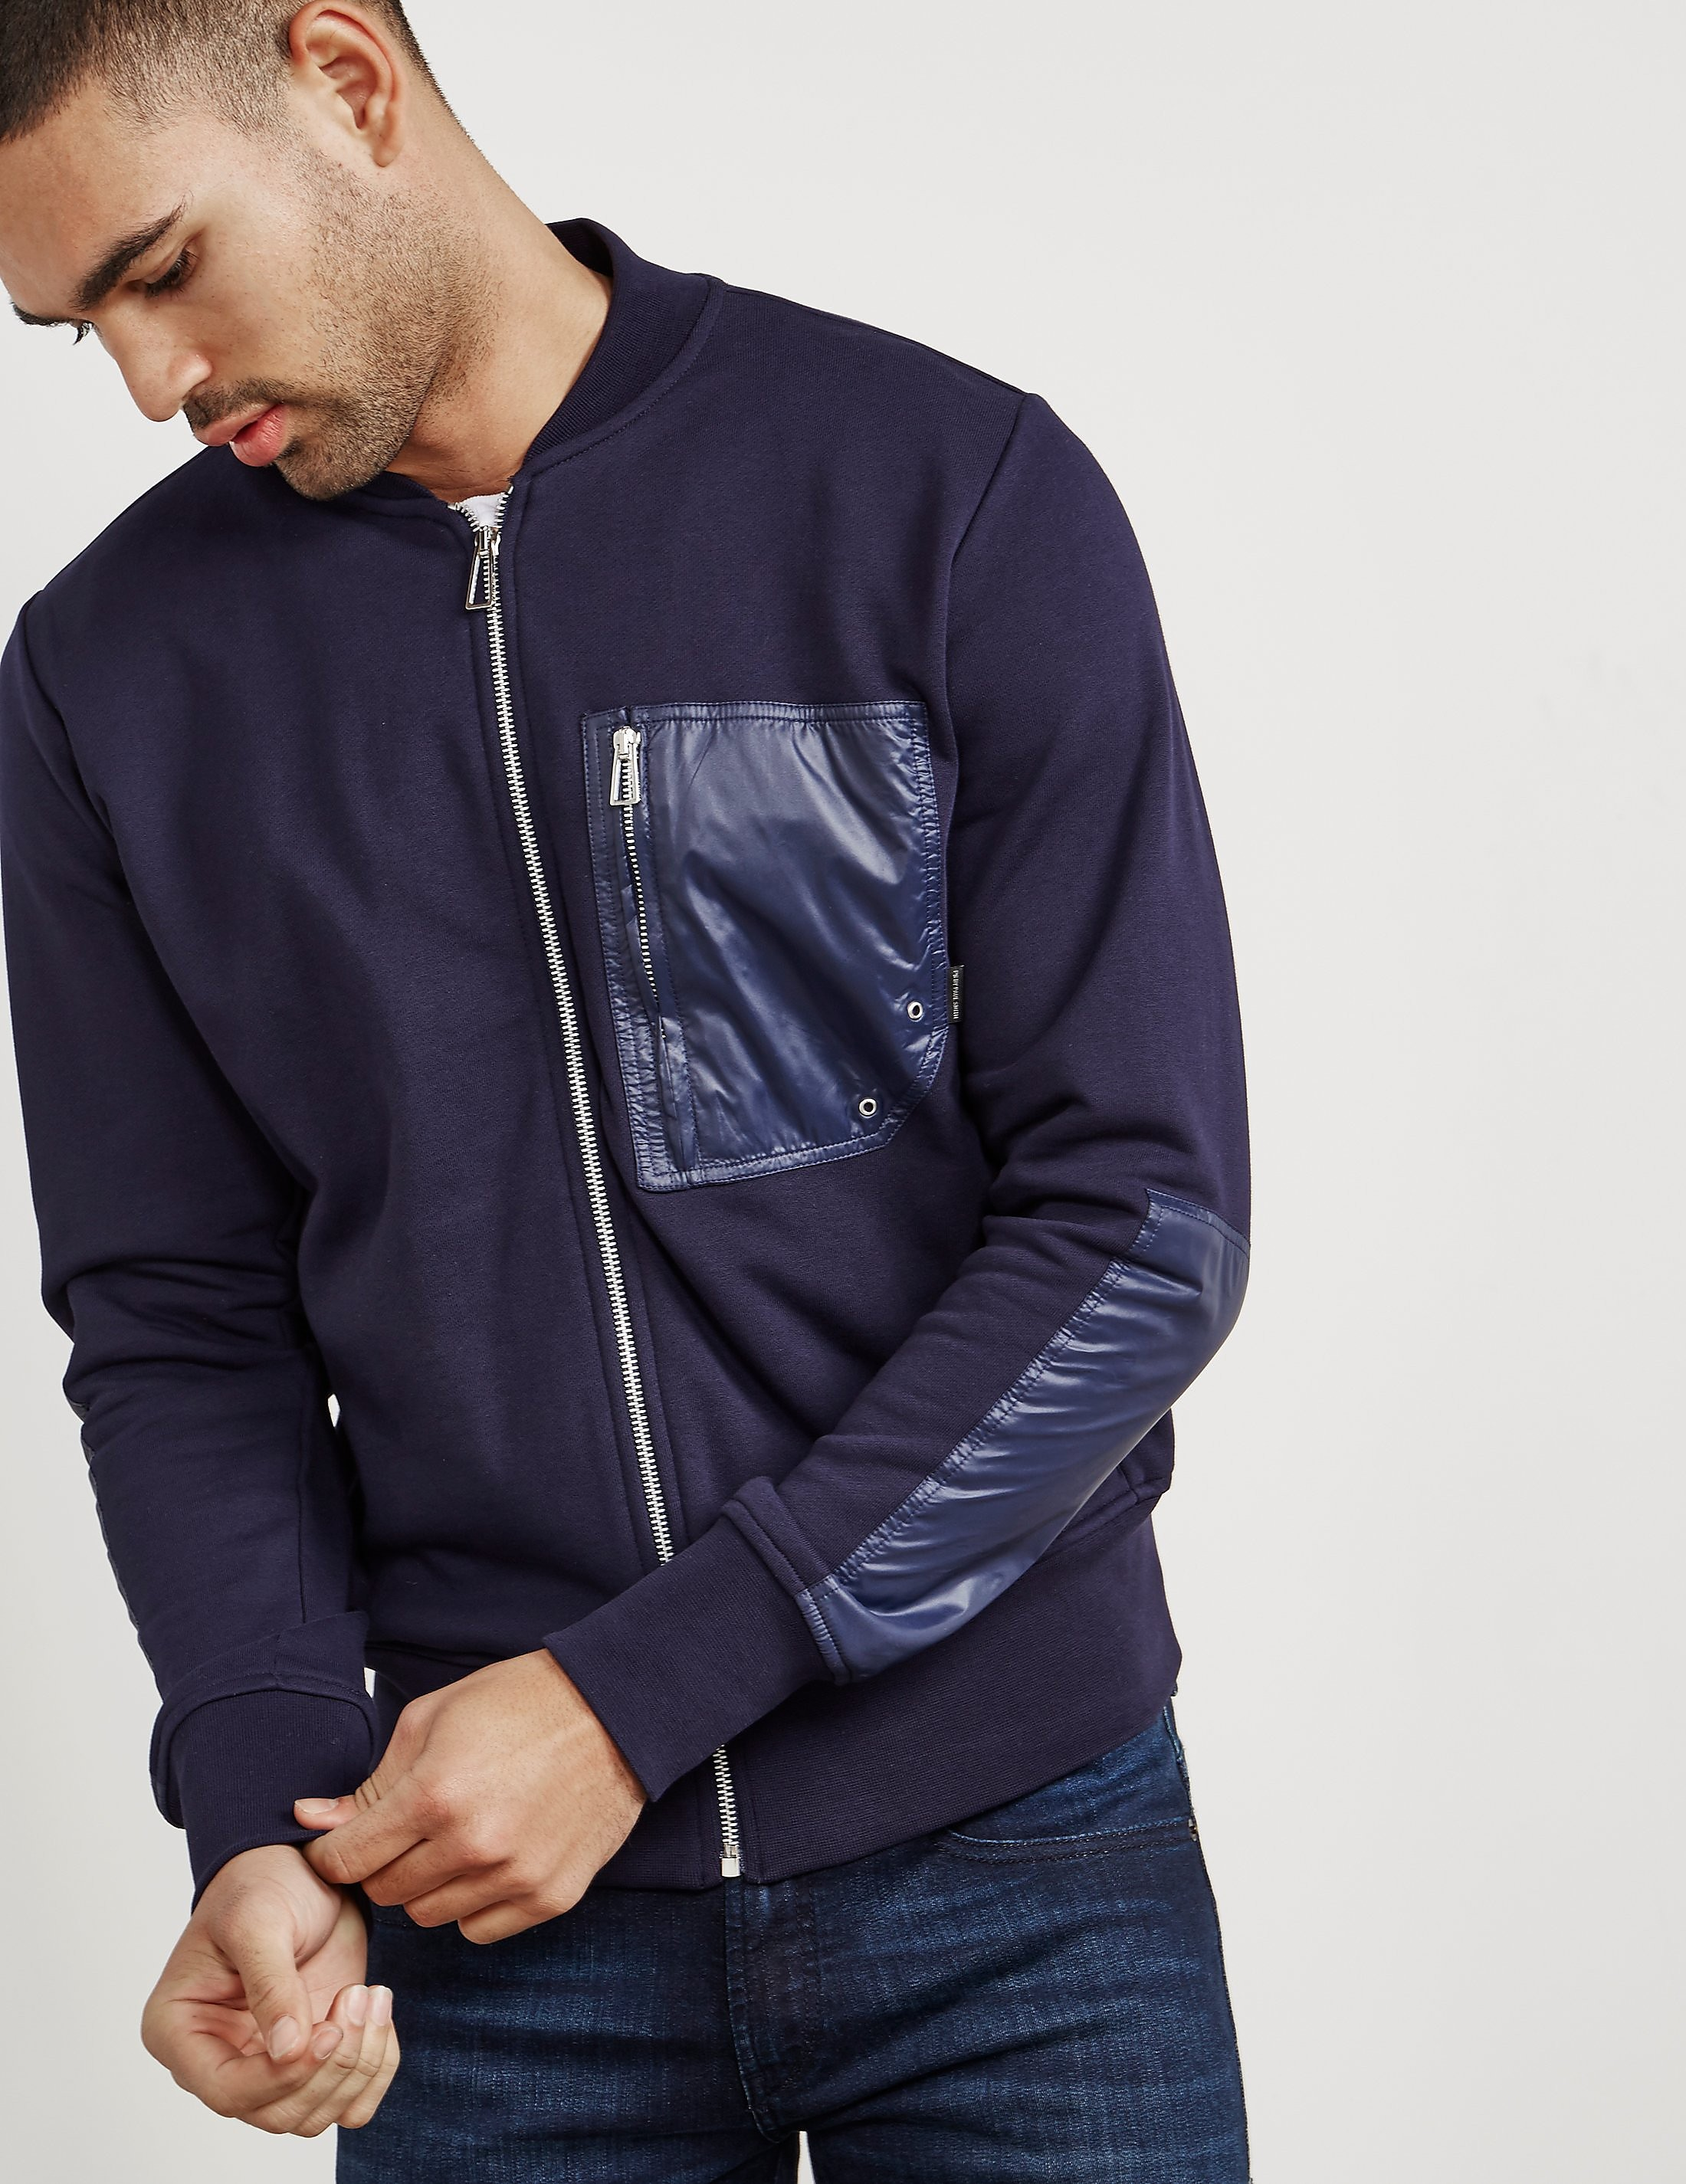 Paul Smith Bomber Track Top